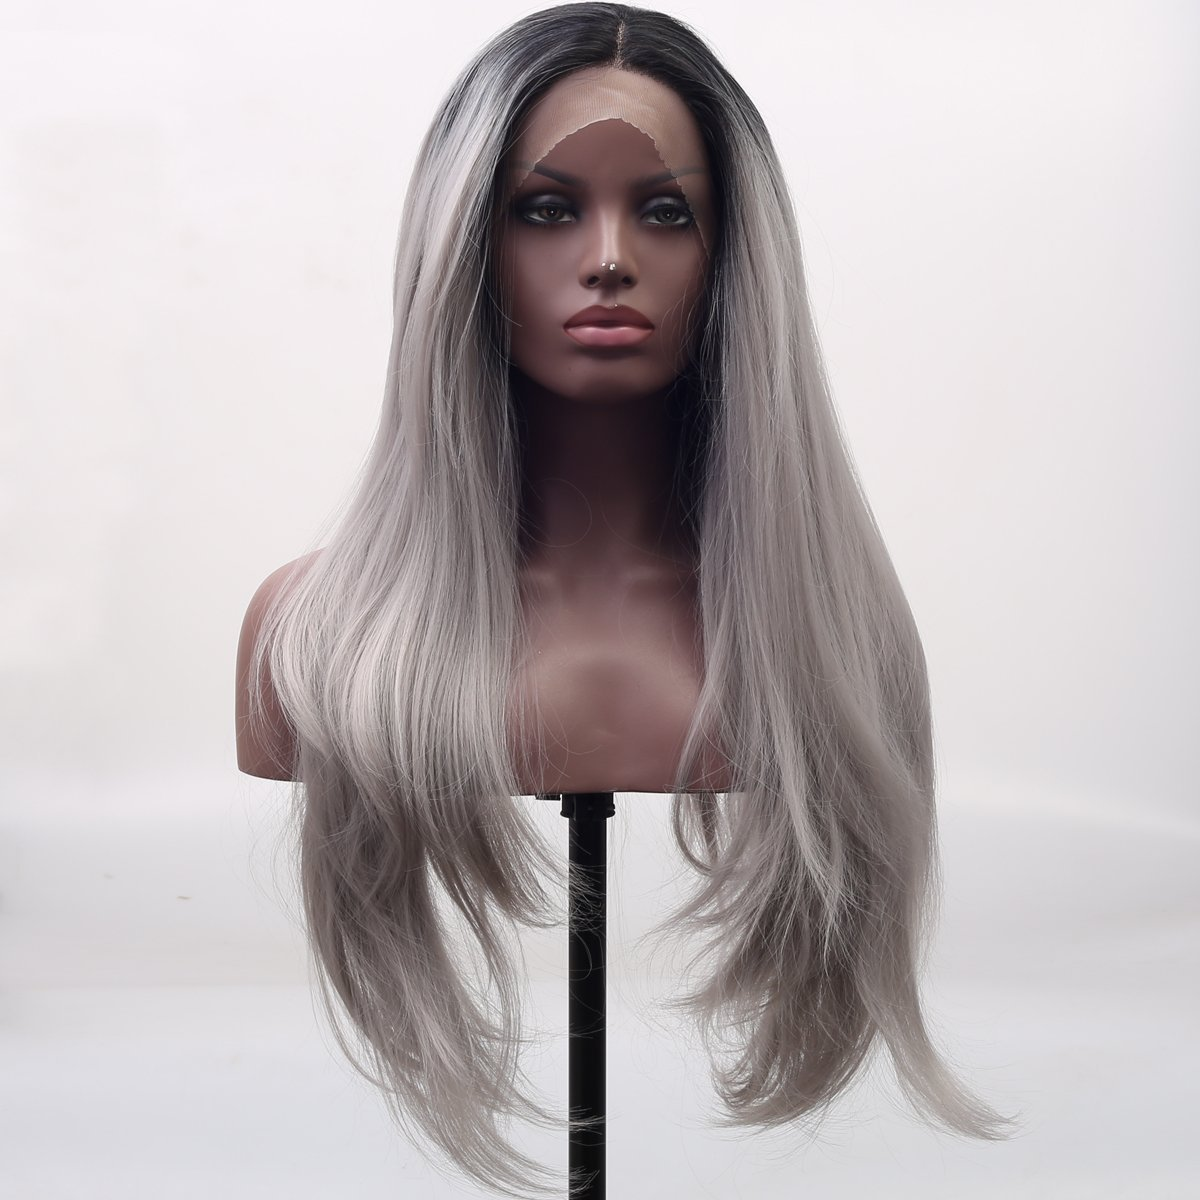 Arimika Natural Straight Short Black Roots Silver Grey Ombre Synthetic Hair Lace Front Wigs